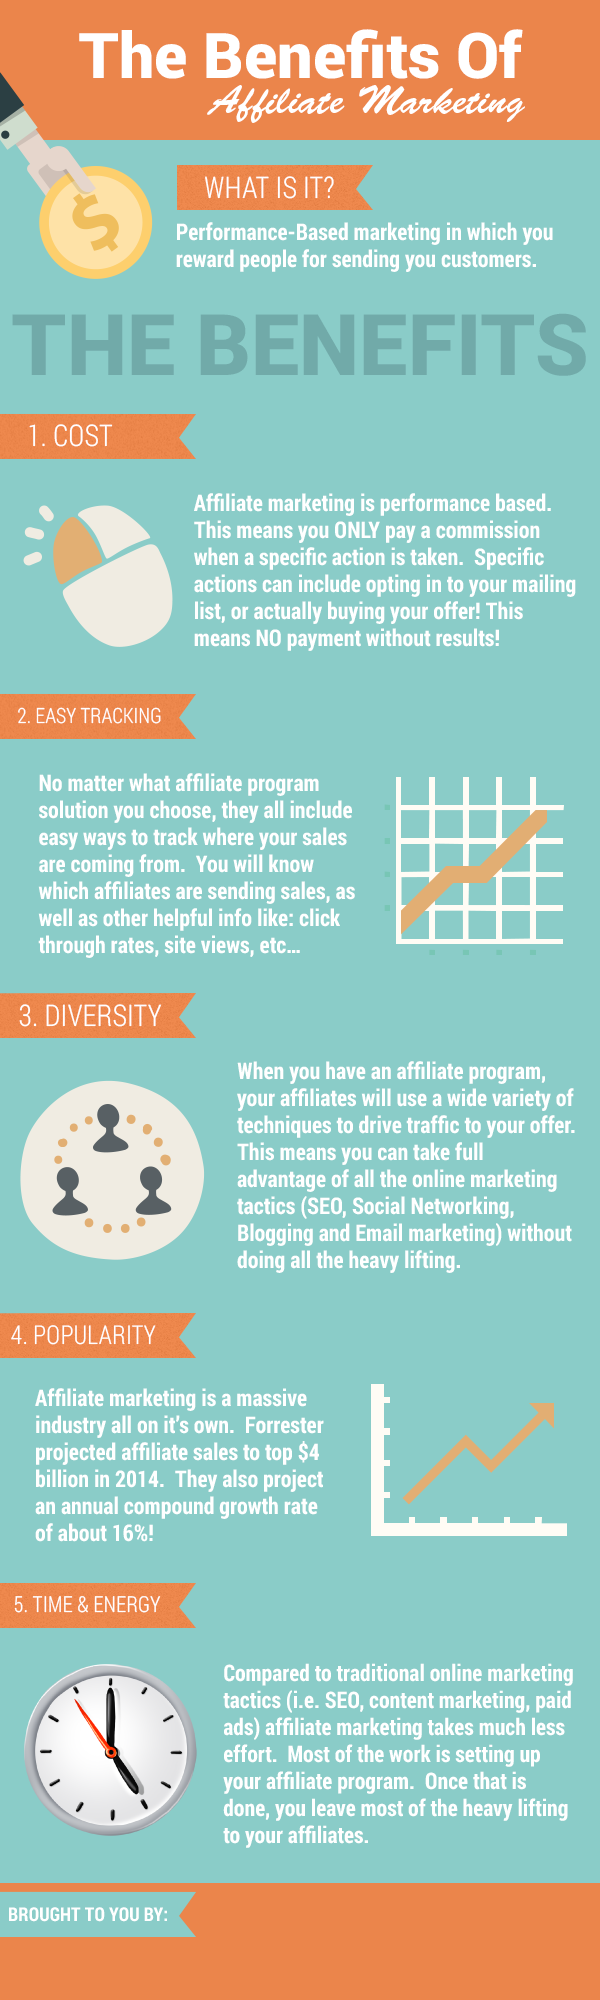 The Benefits of Affiliate Marketing